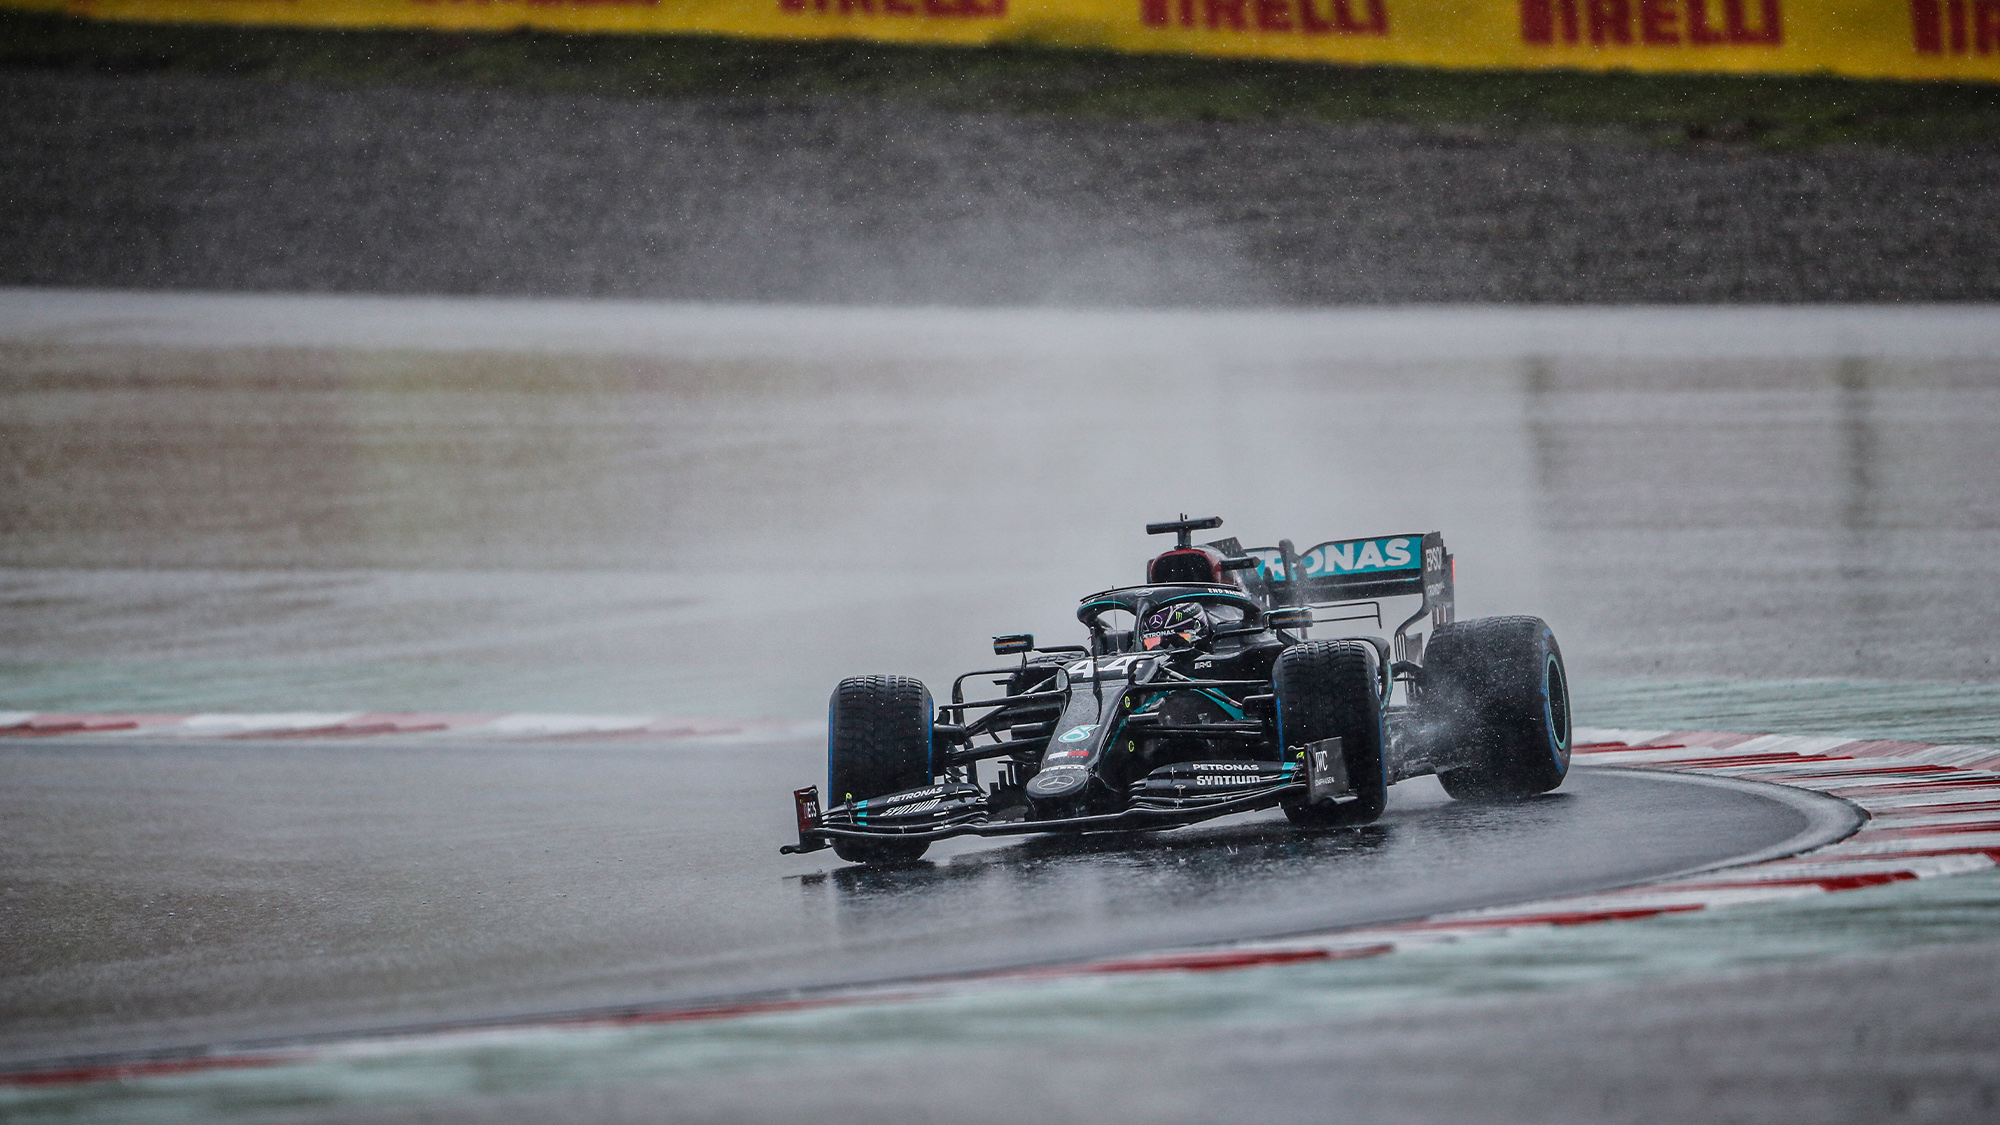 Lewis Hamilton slides his Mercedes round the Istanbul Park circuit during the 2020 F1 Turkish Grand Prix weekend